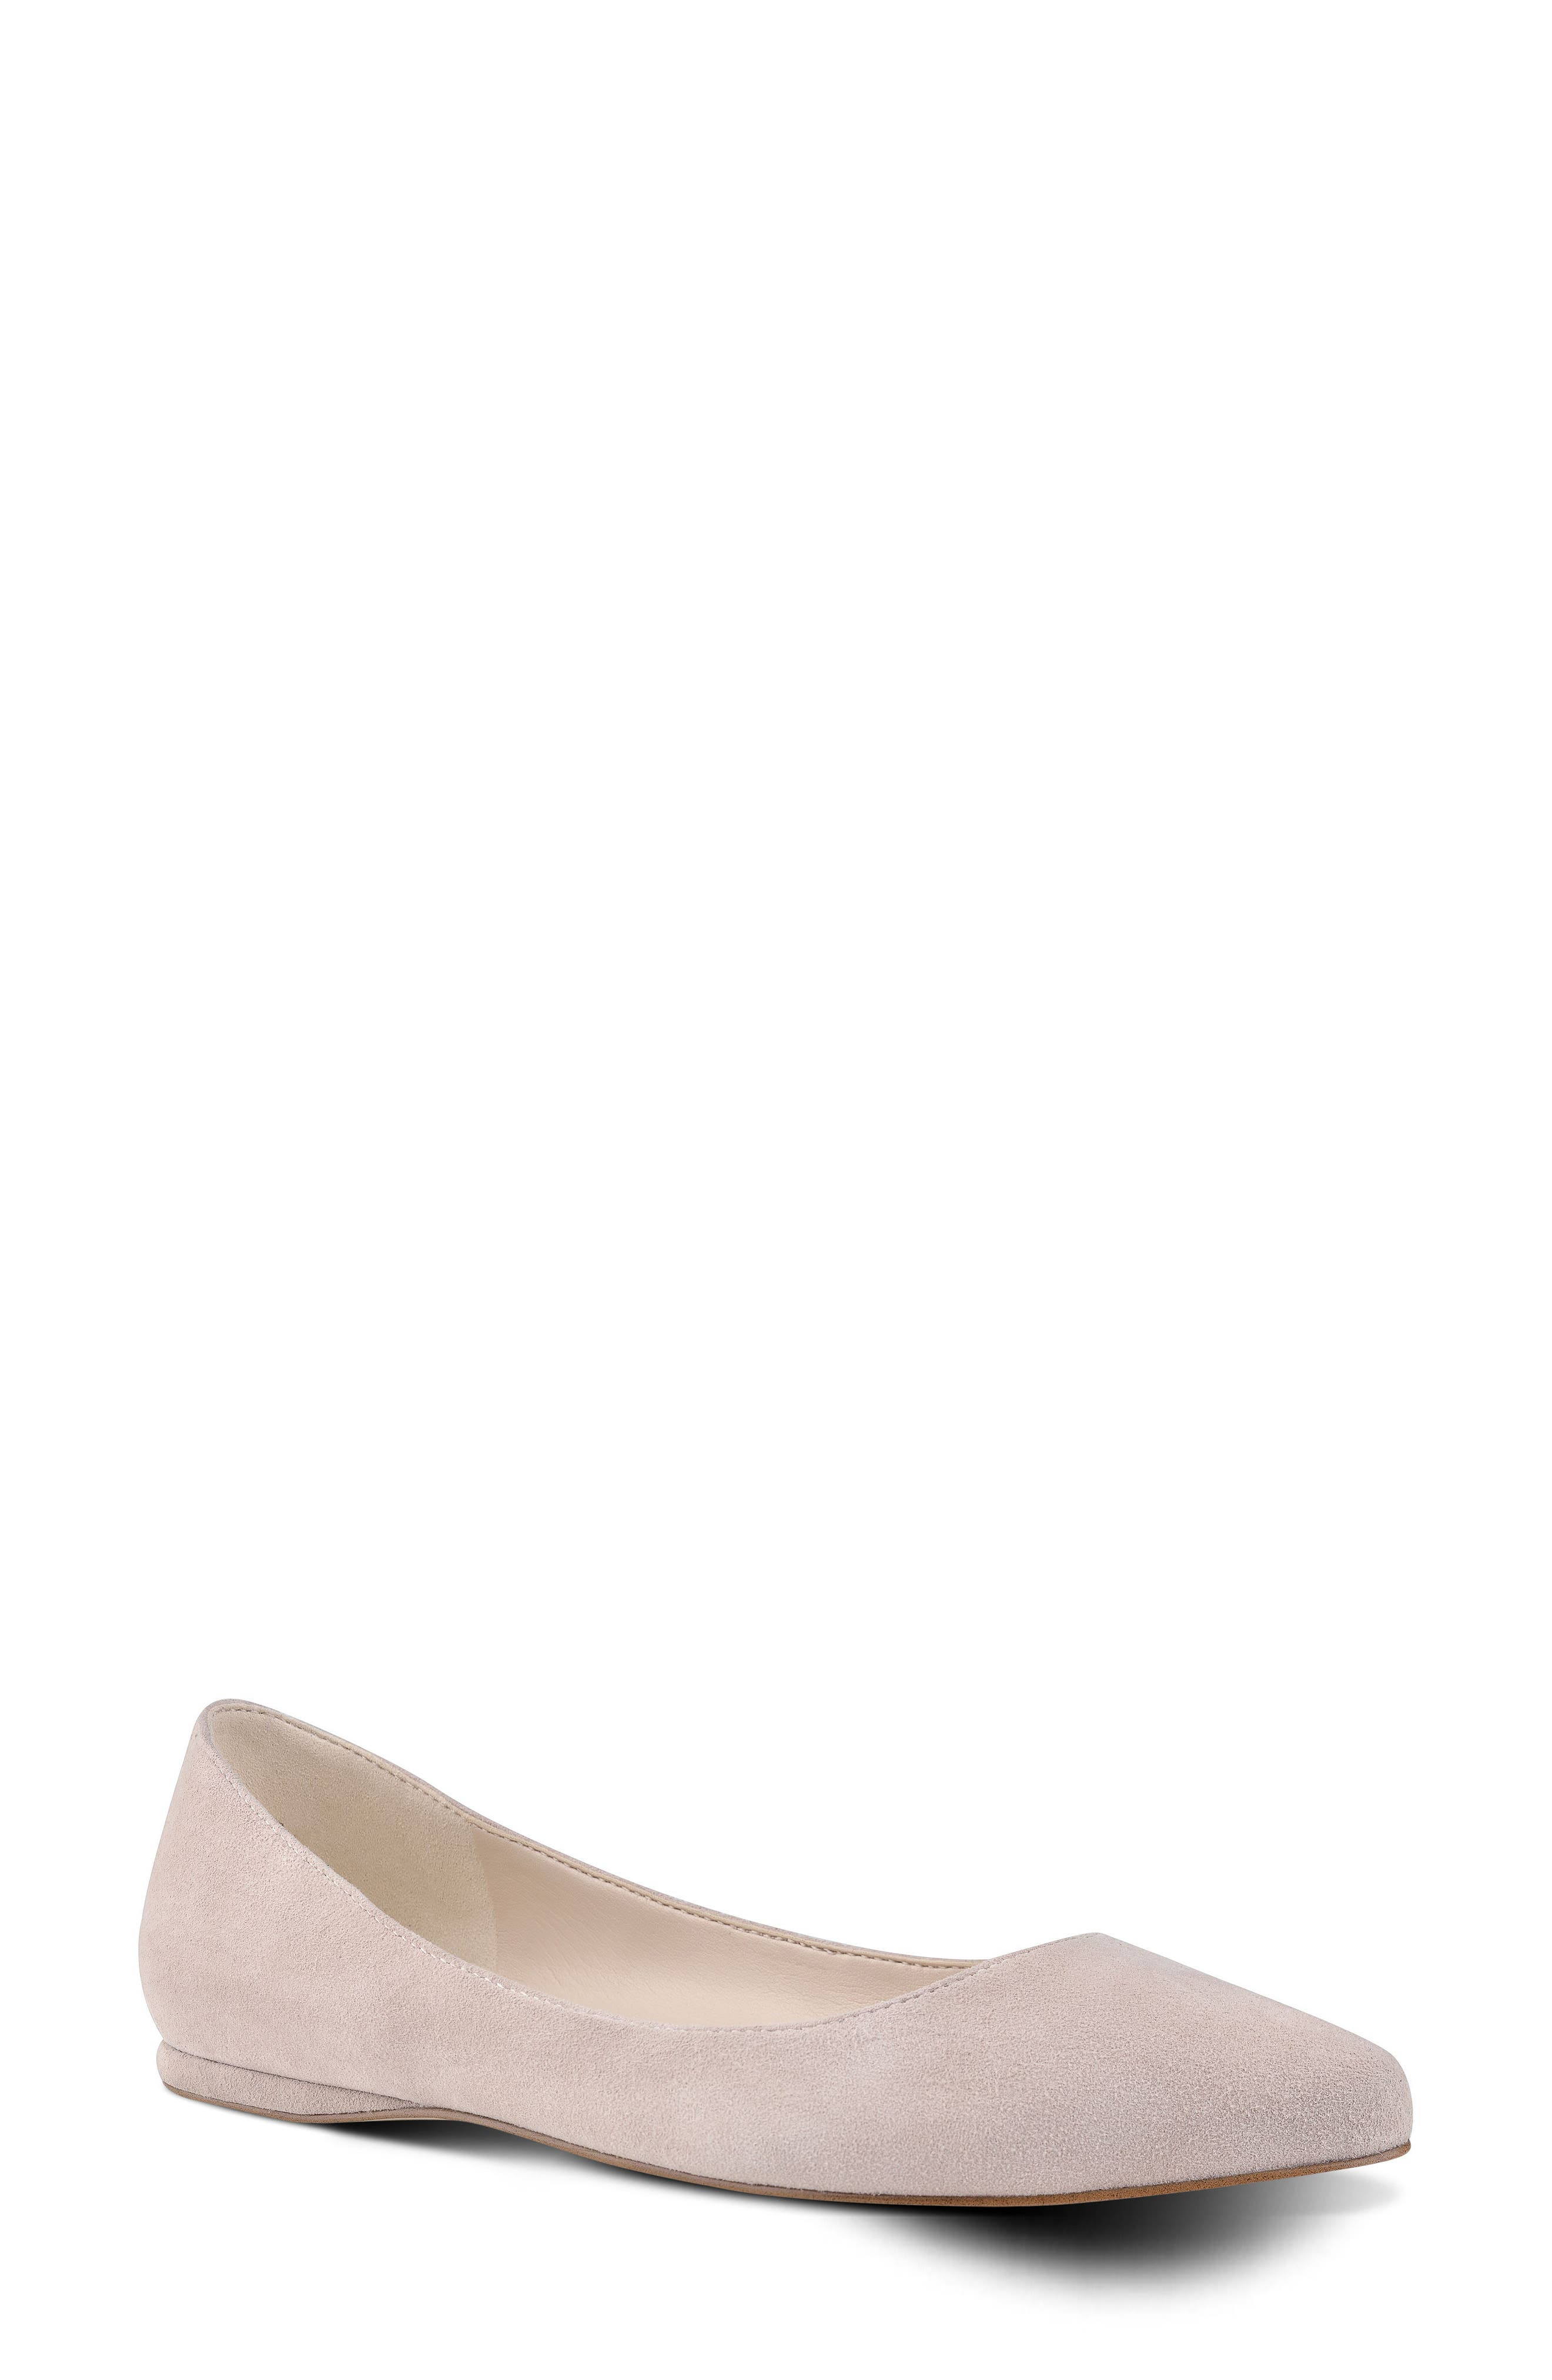 'Speakup' Flat,                         Main,                         color, Natural Suede